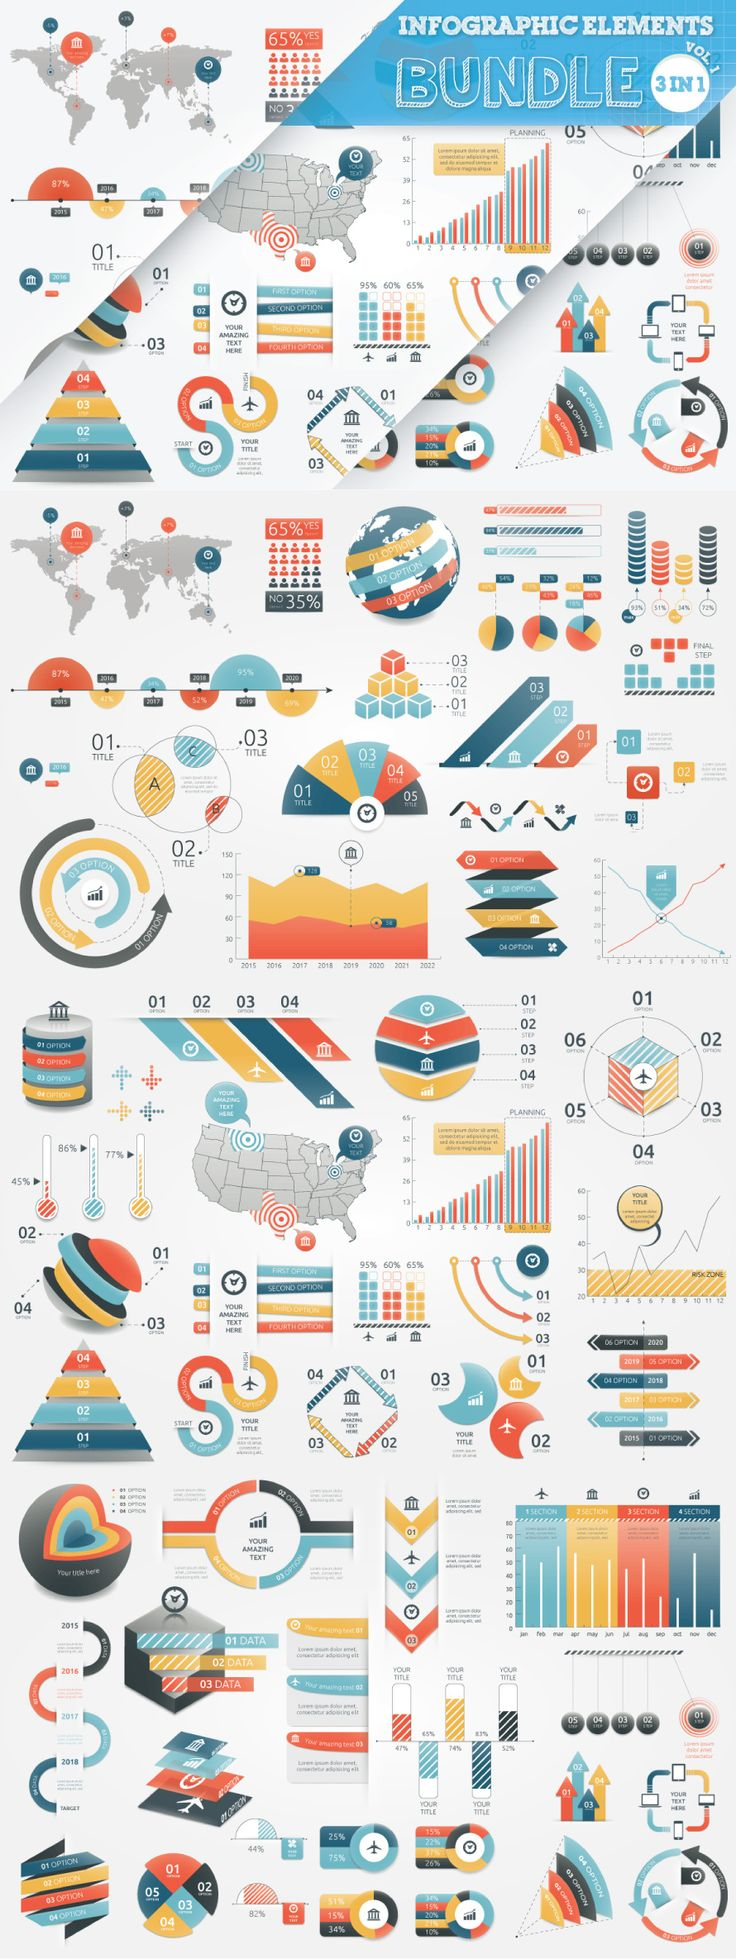 Check out #Infographic Infographic Bundle (vol.1) http://infographicparadise.com/infographic/96-Infographic-Bundle-%28vol.1%29 on http://infographicparadise.com/